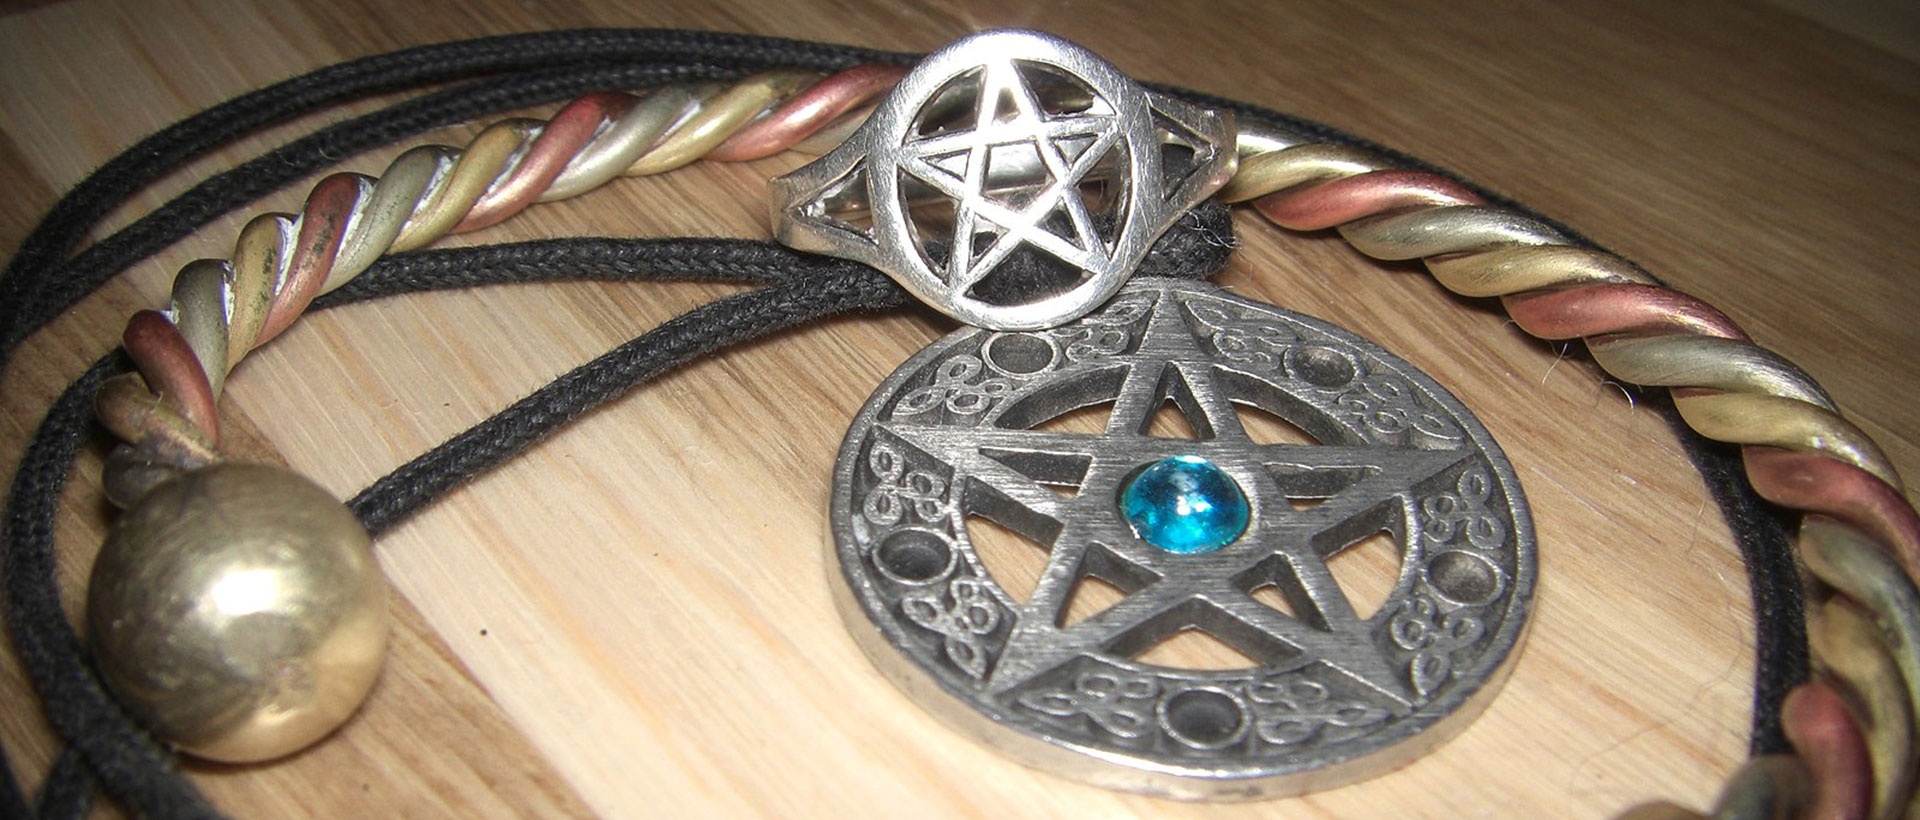 9 Things You Should Know About Wicca and Modern Witchcraft